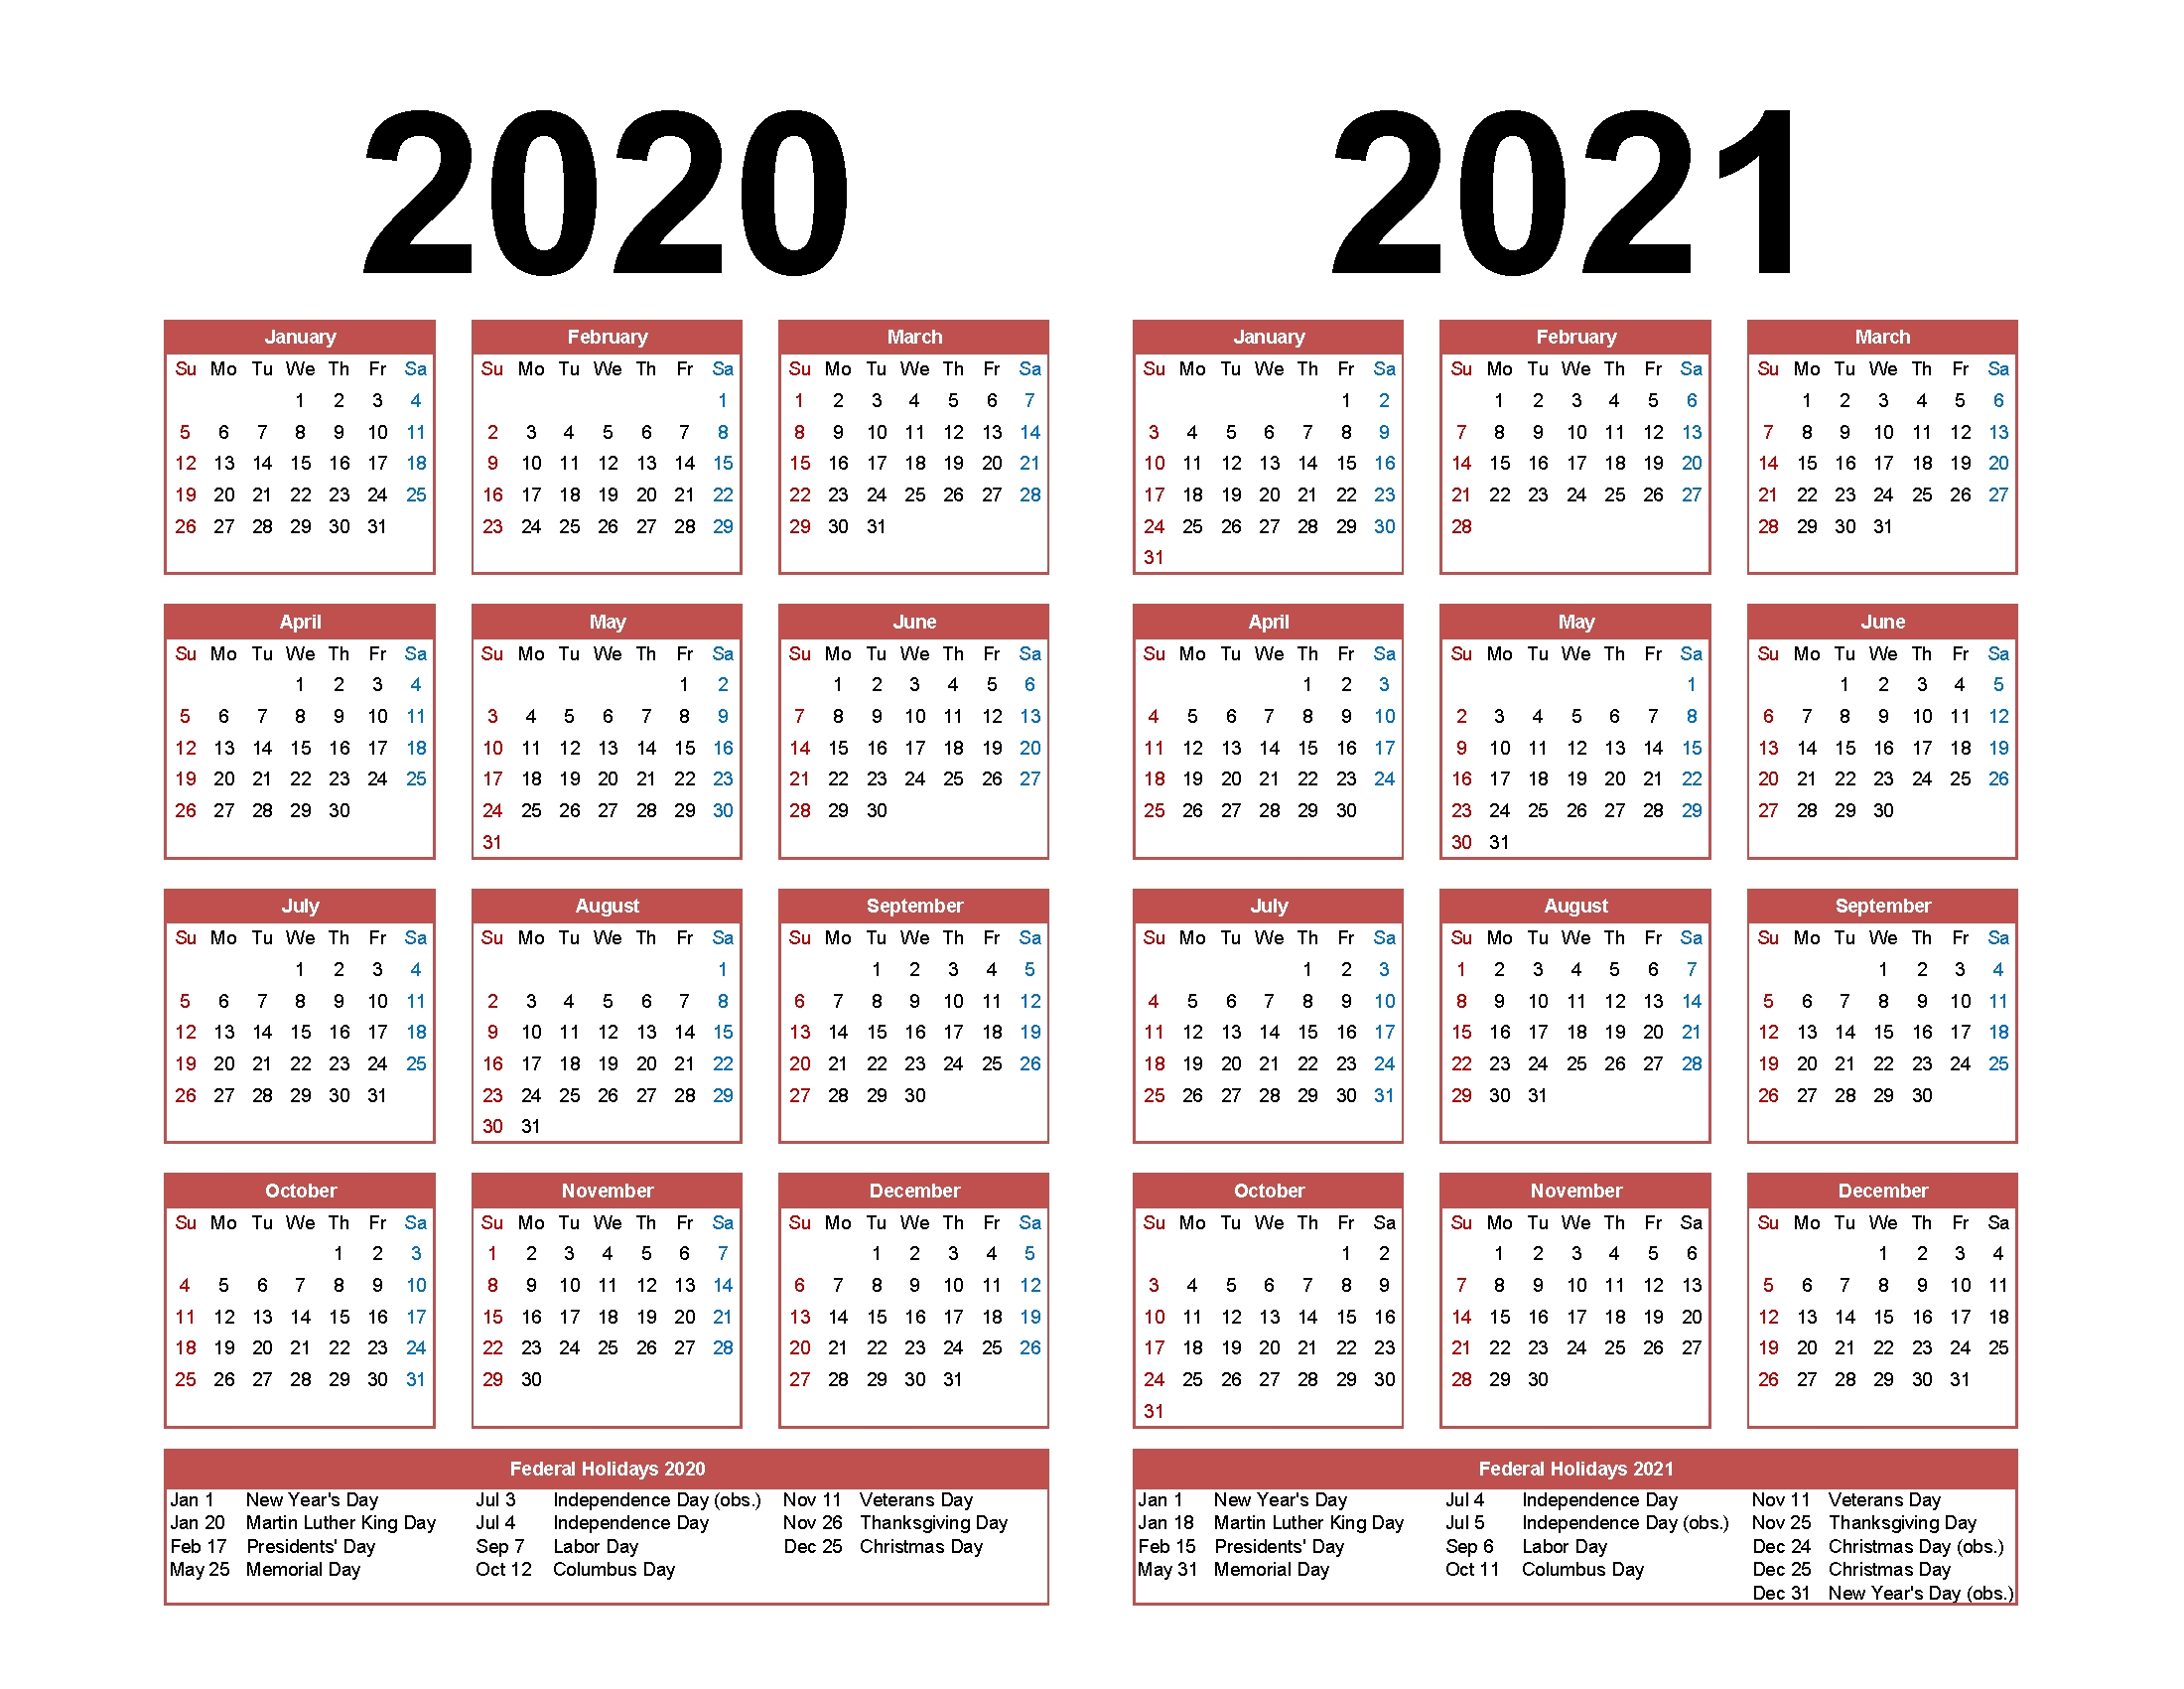 Printable W9 Form – Online Samples In Pdf To Fill Out And Sign Intended For 2020 W-9 Form-2021 Calendar To Fill In